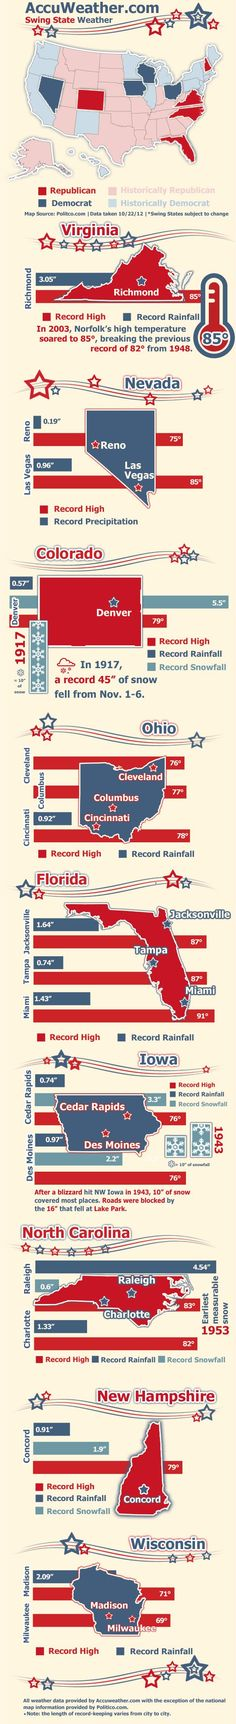 Swing State Weather [INFOGRAPHIC]